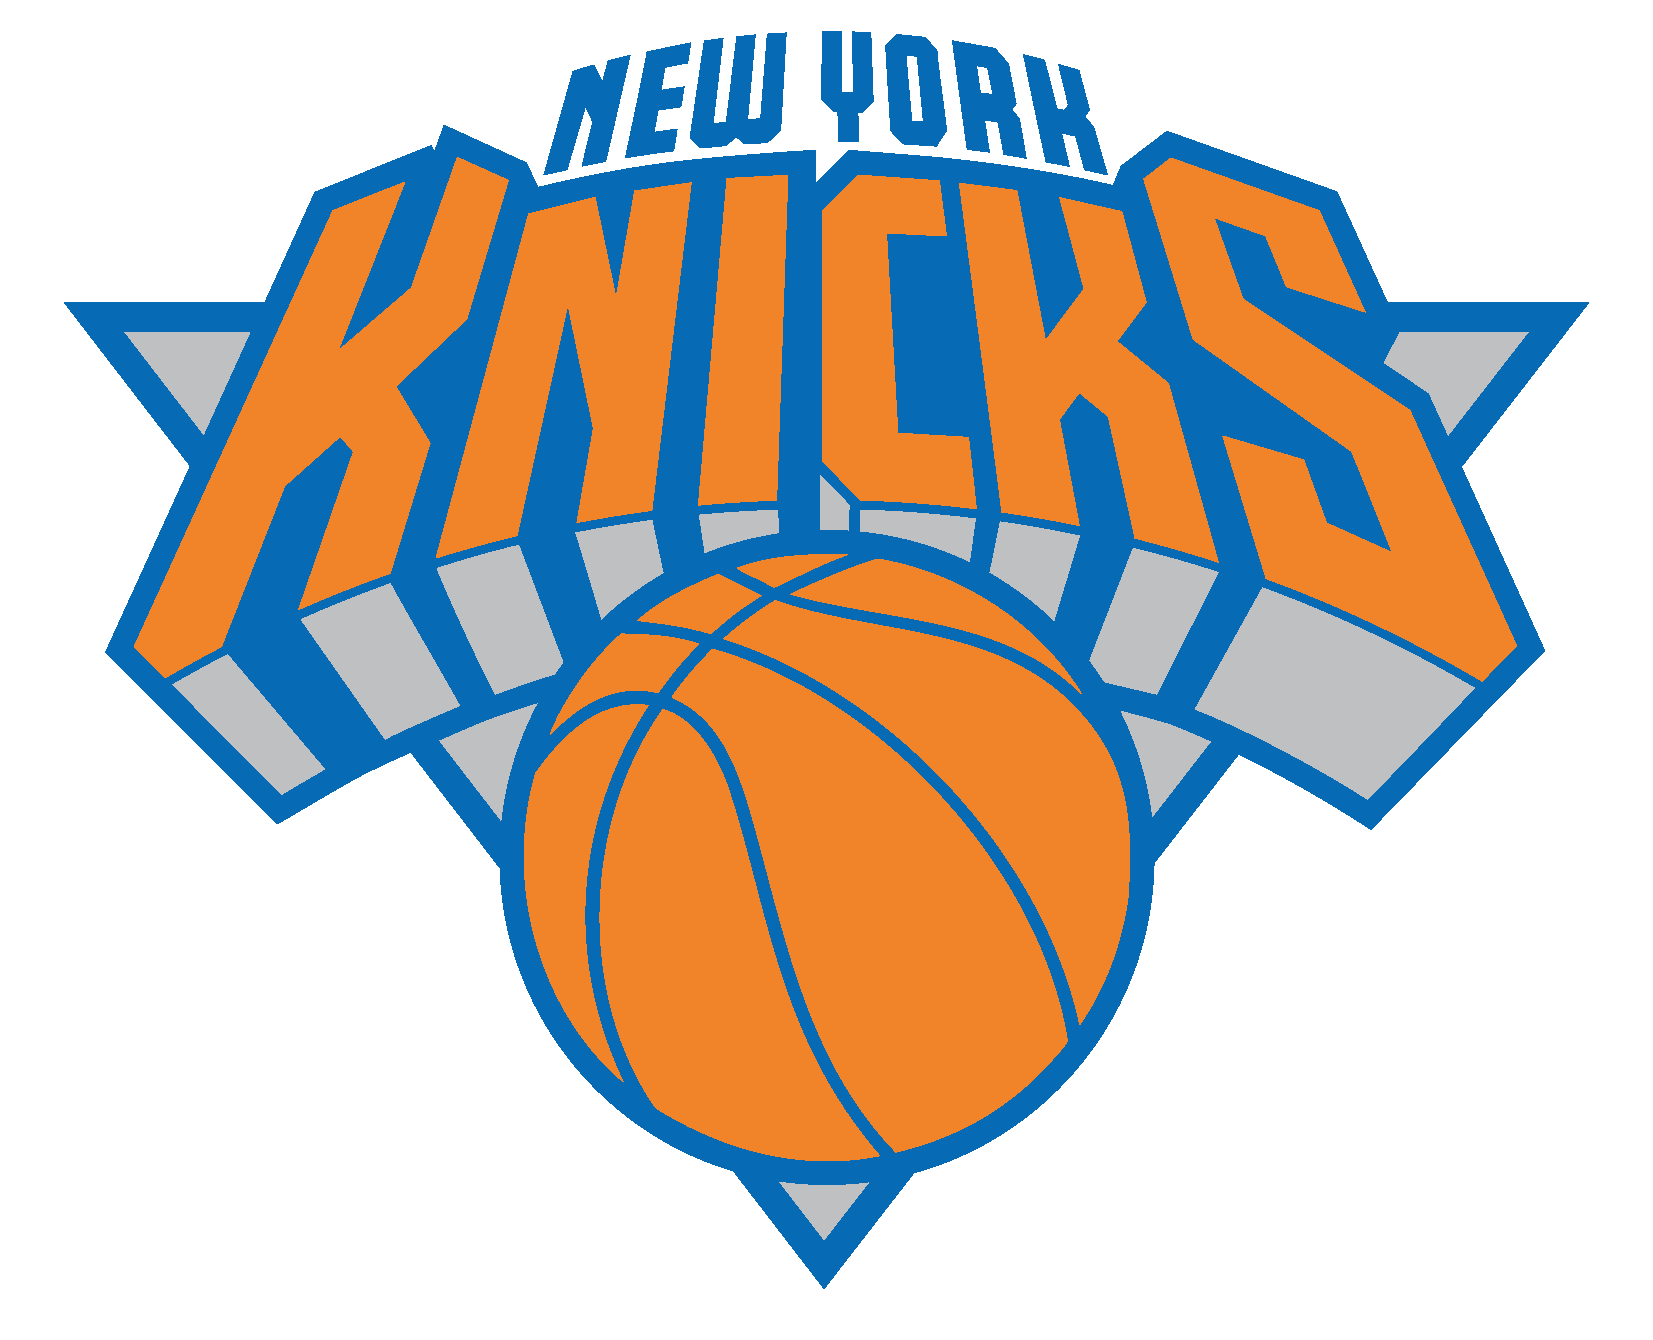 1653x1340 Knicks Logo [New York] Vector Eps Free Download, Logo, Icons, Clipart